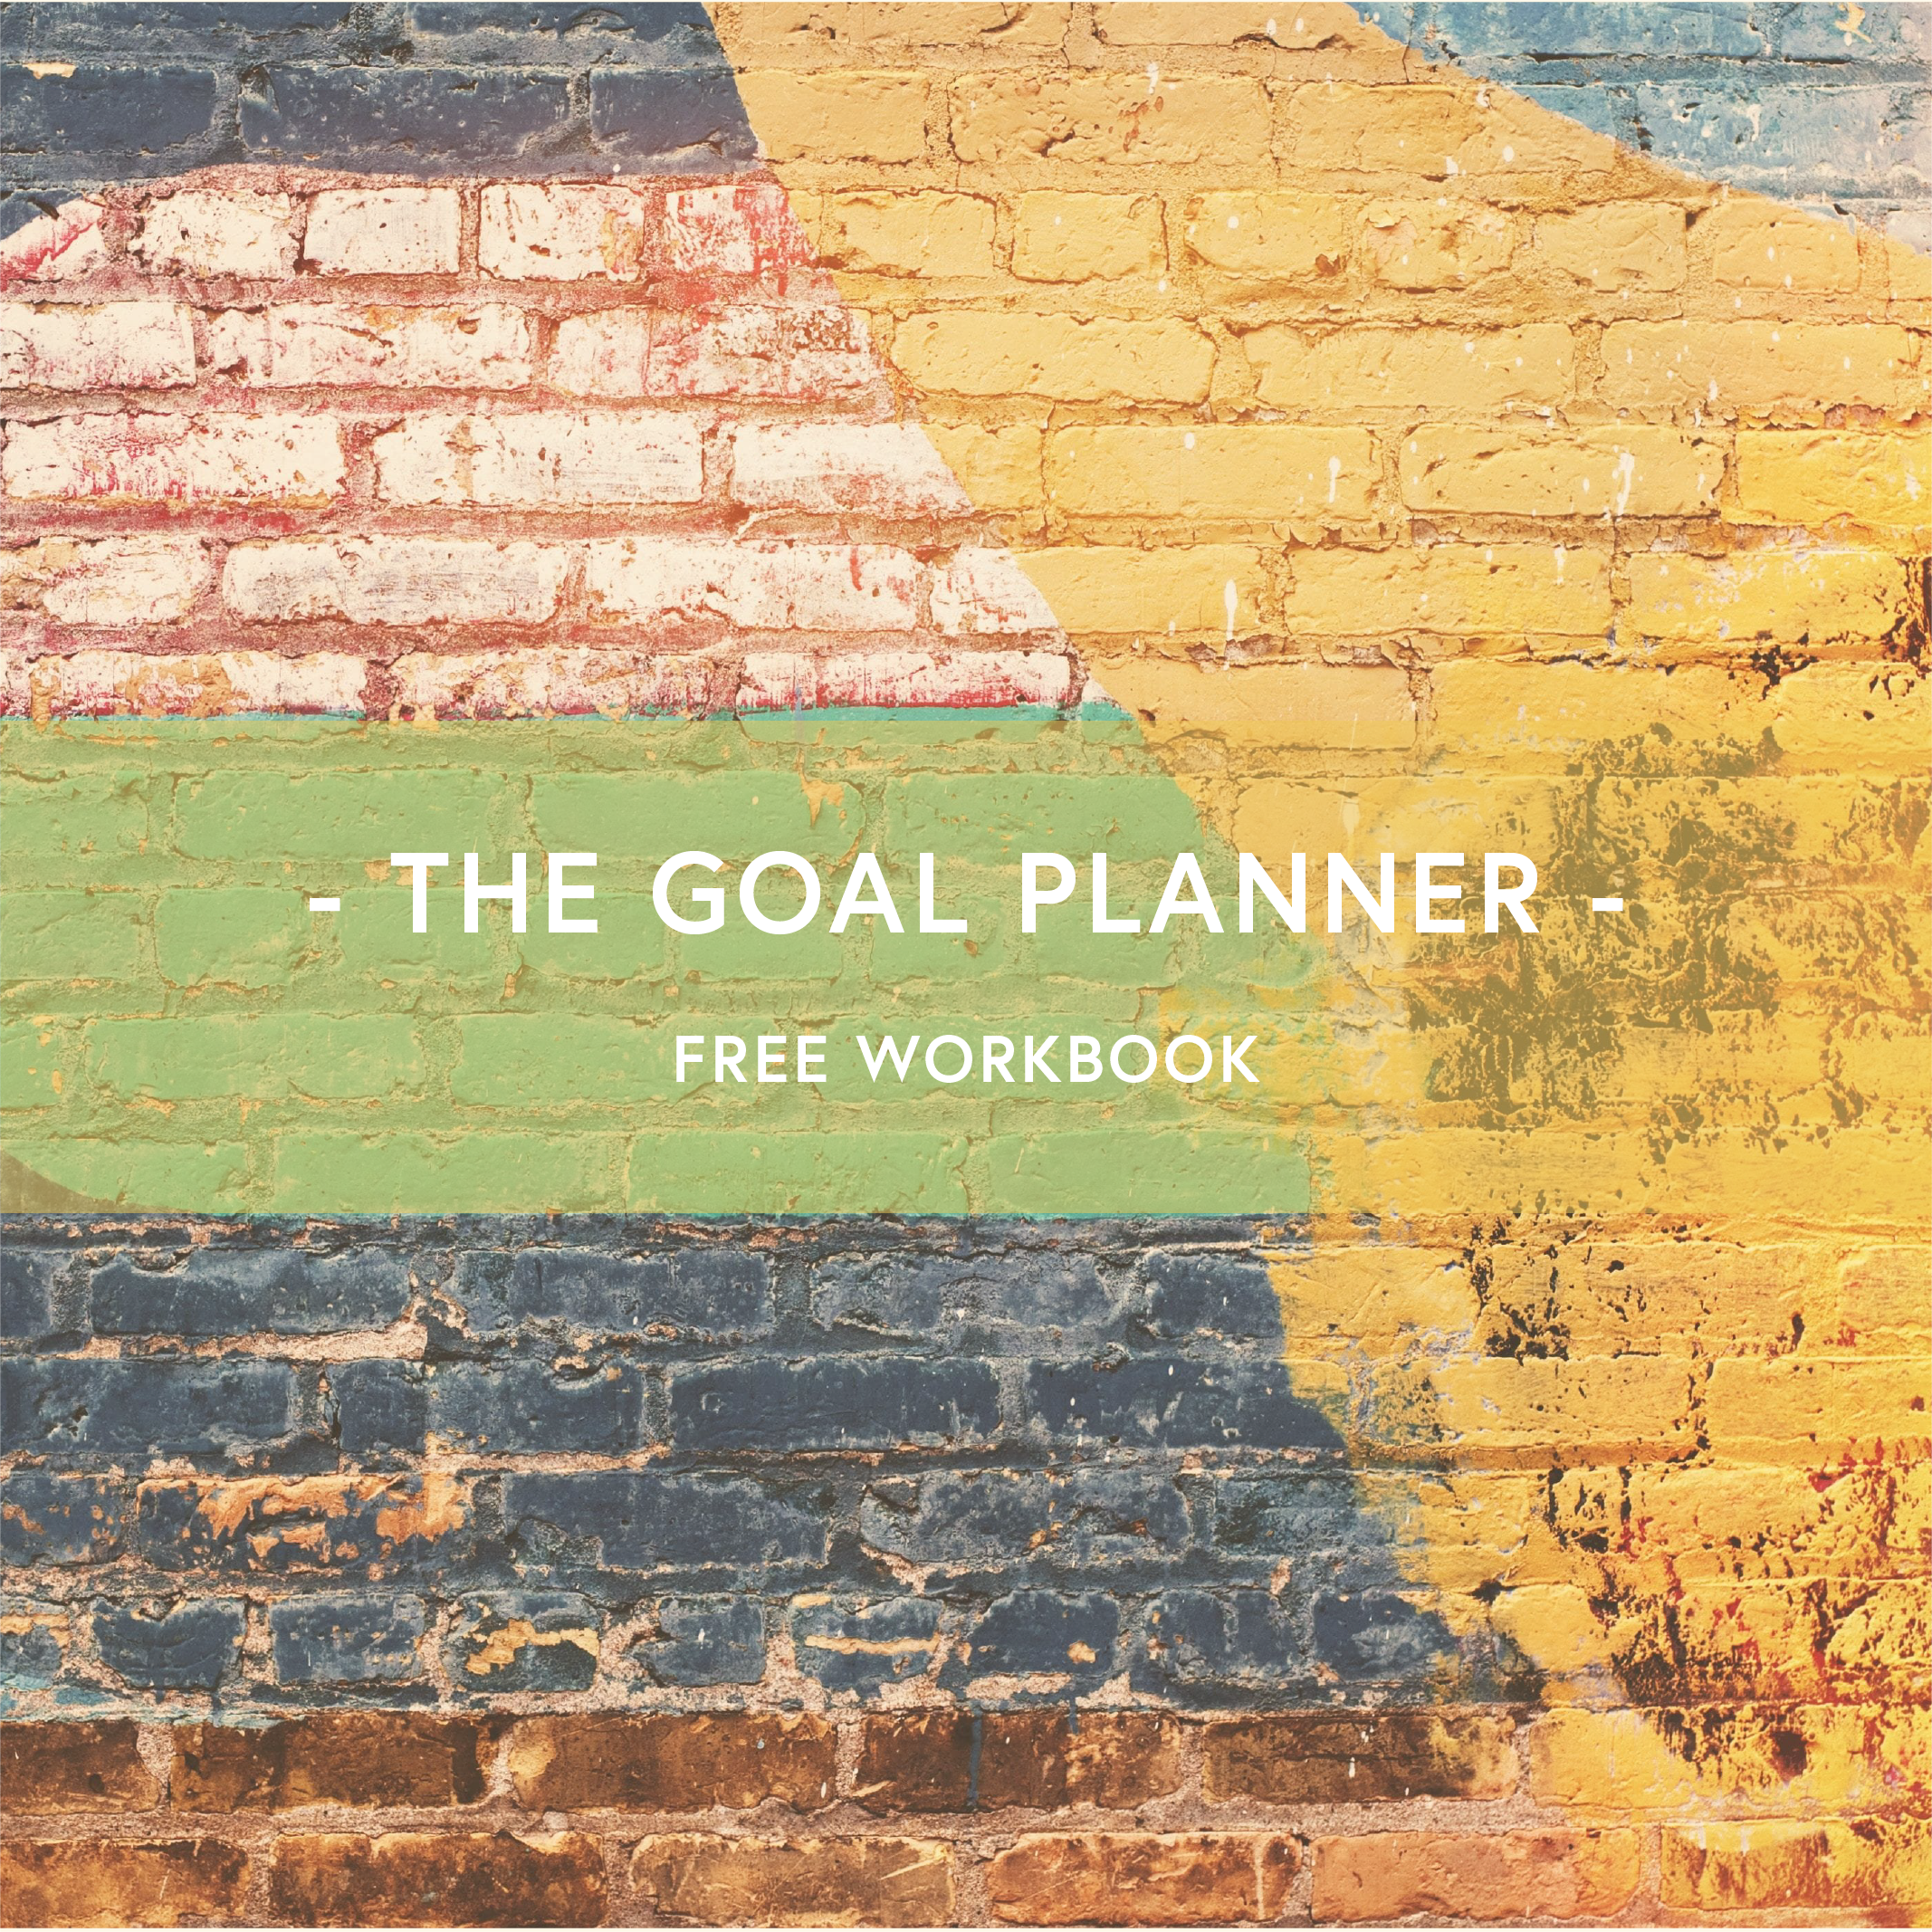 the-goal-planner-workbook.png